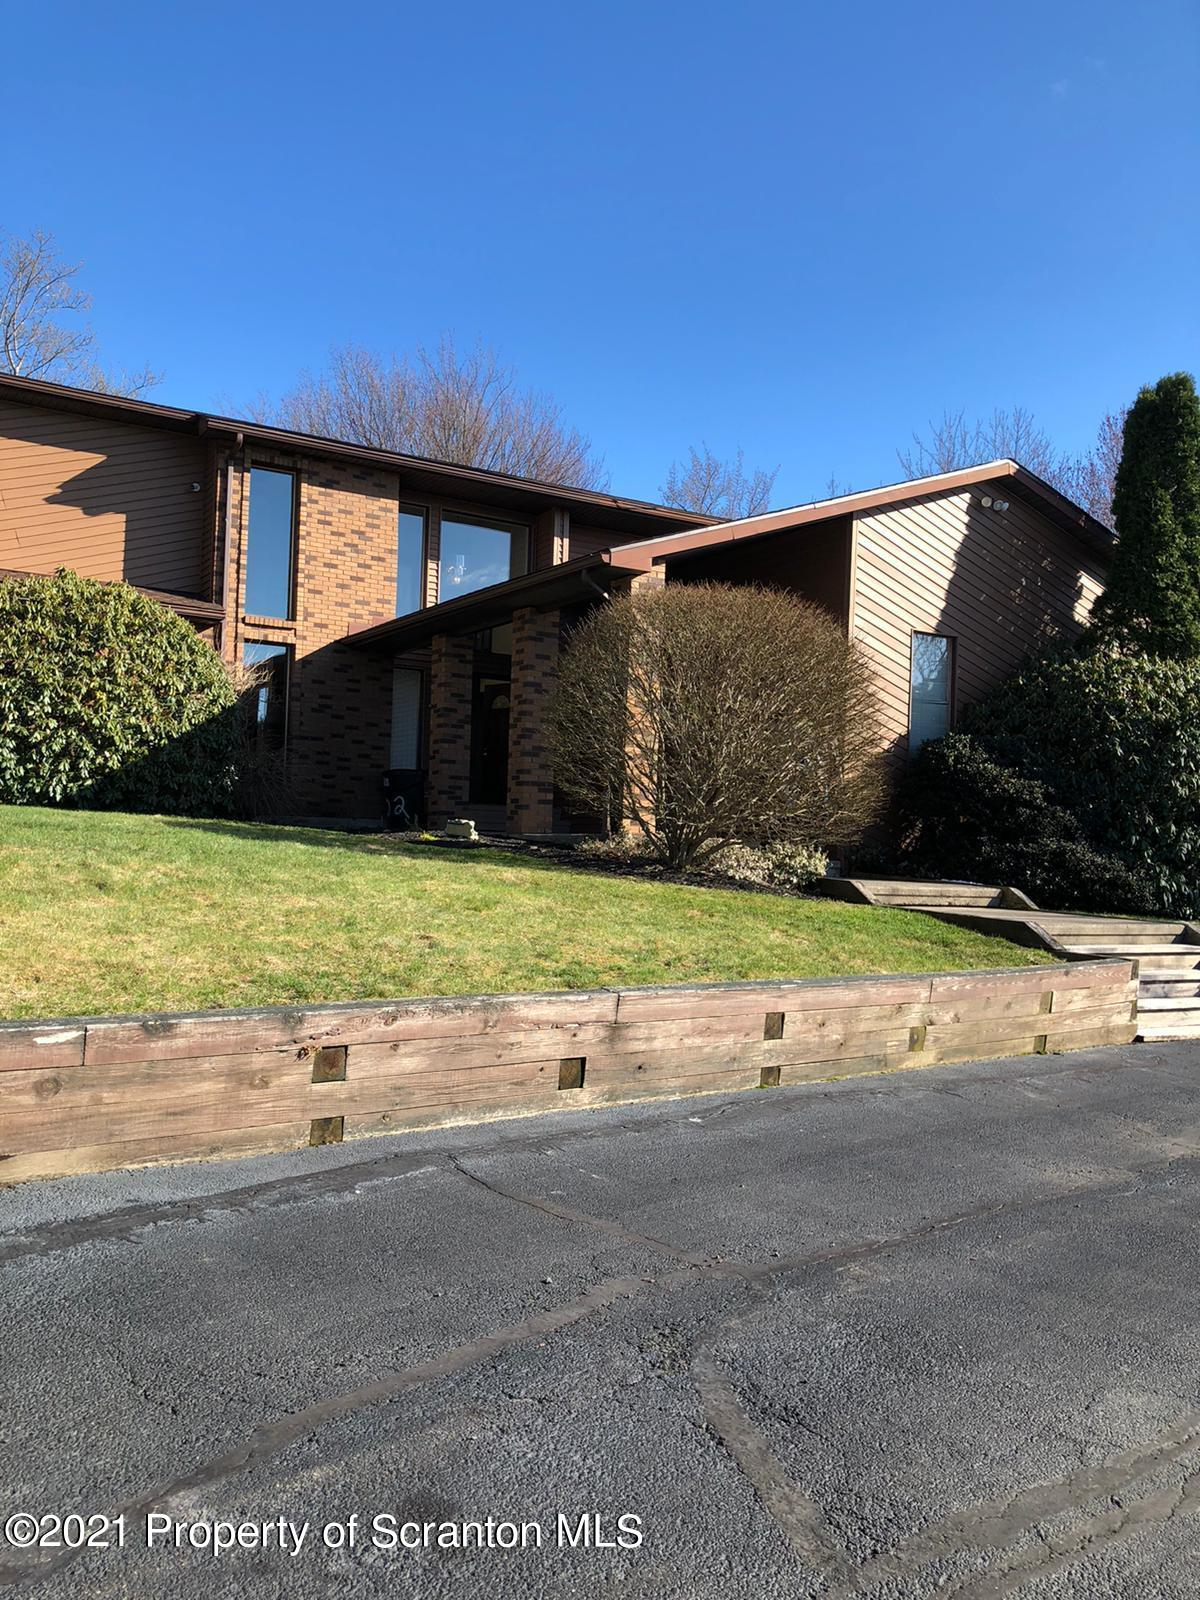 502 Willow Ln, Clarks Summit, Pennsylvania 18411, 5 Bedrooms Bedrooms, 11 Rooms Rooms,3 BathroomsBathrooms,Single Family,For Sale,Willow,21-1397